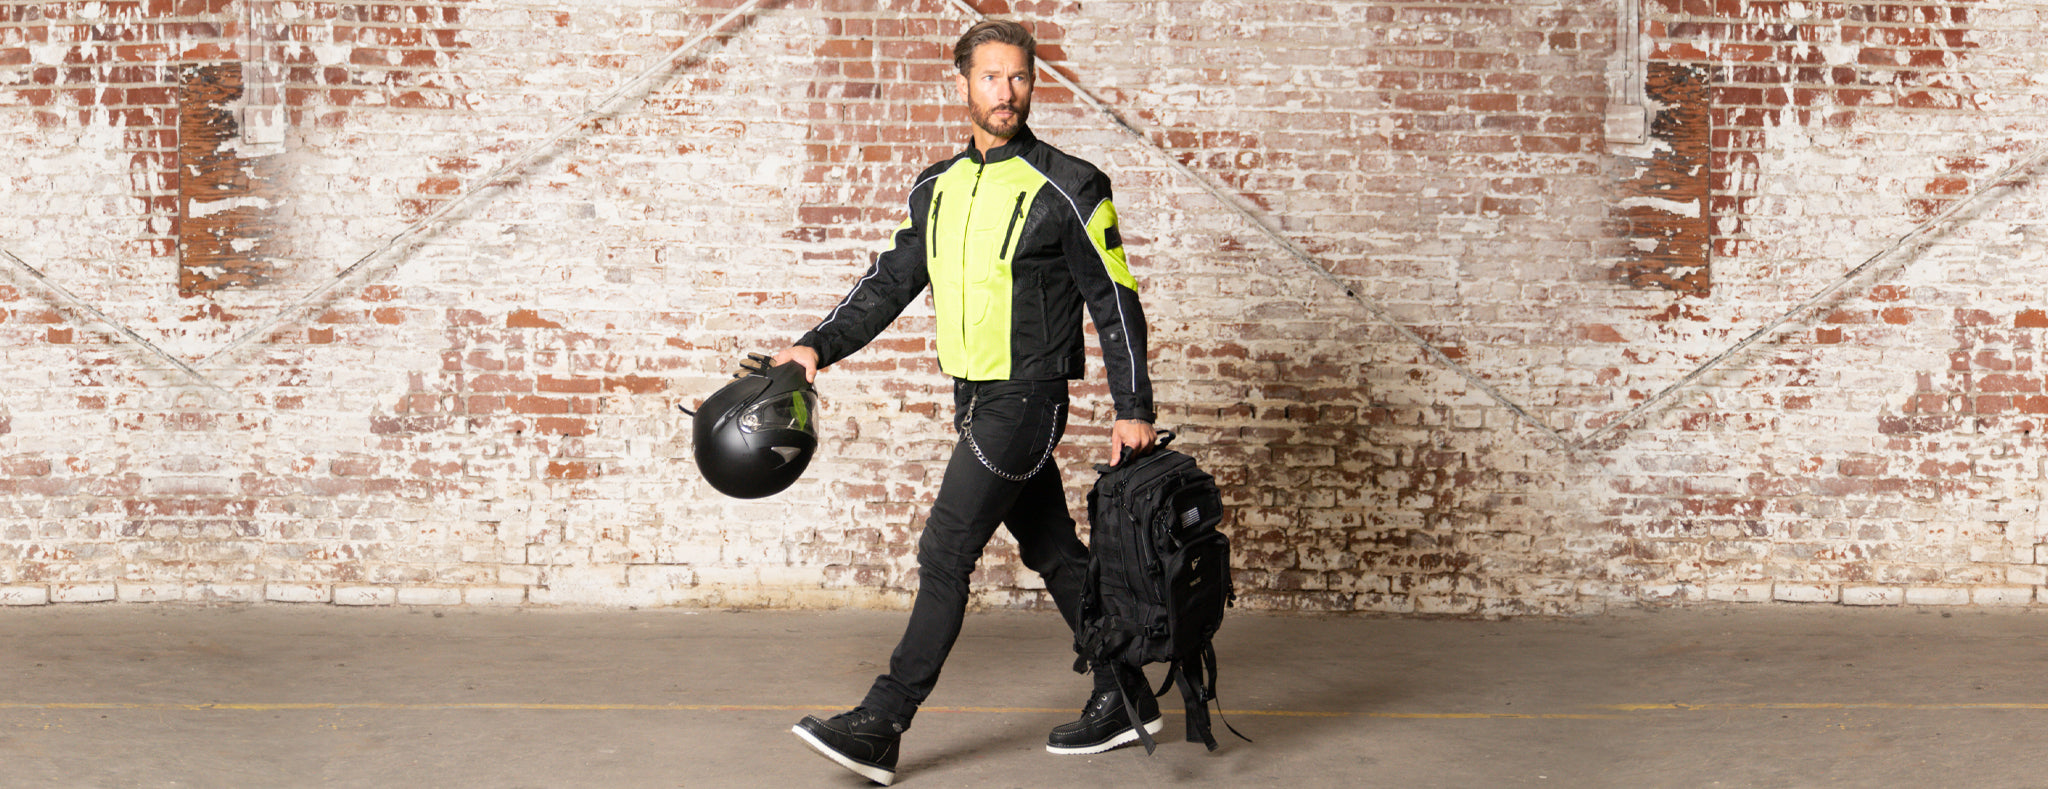 Wear the right motorcycle apparel